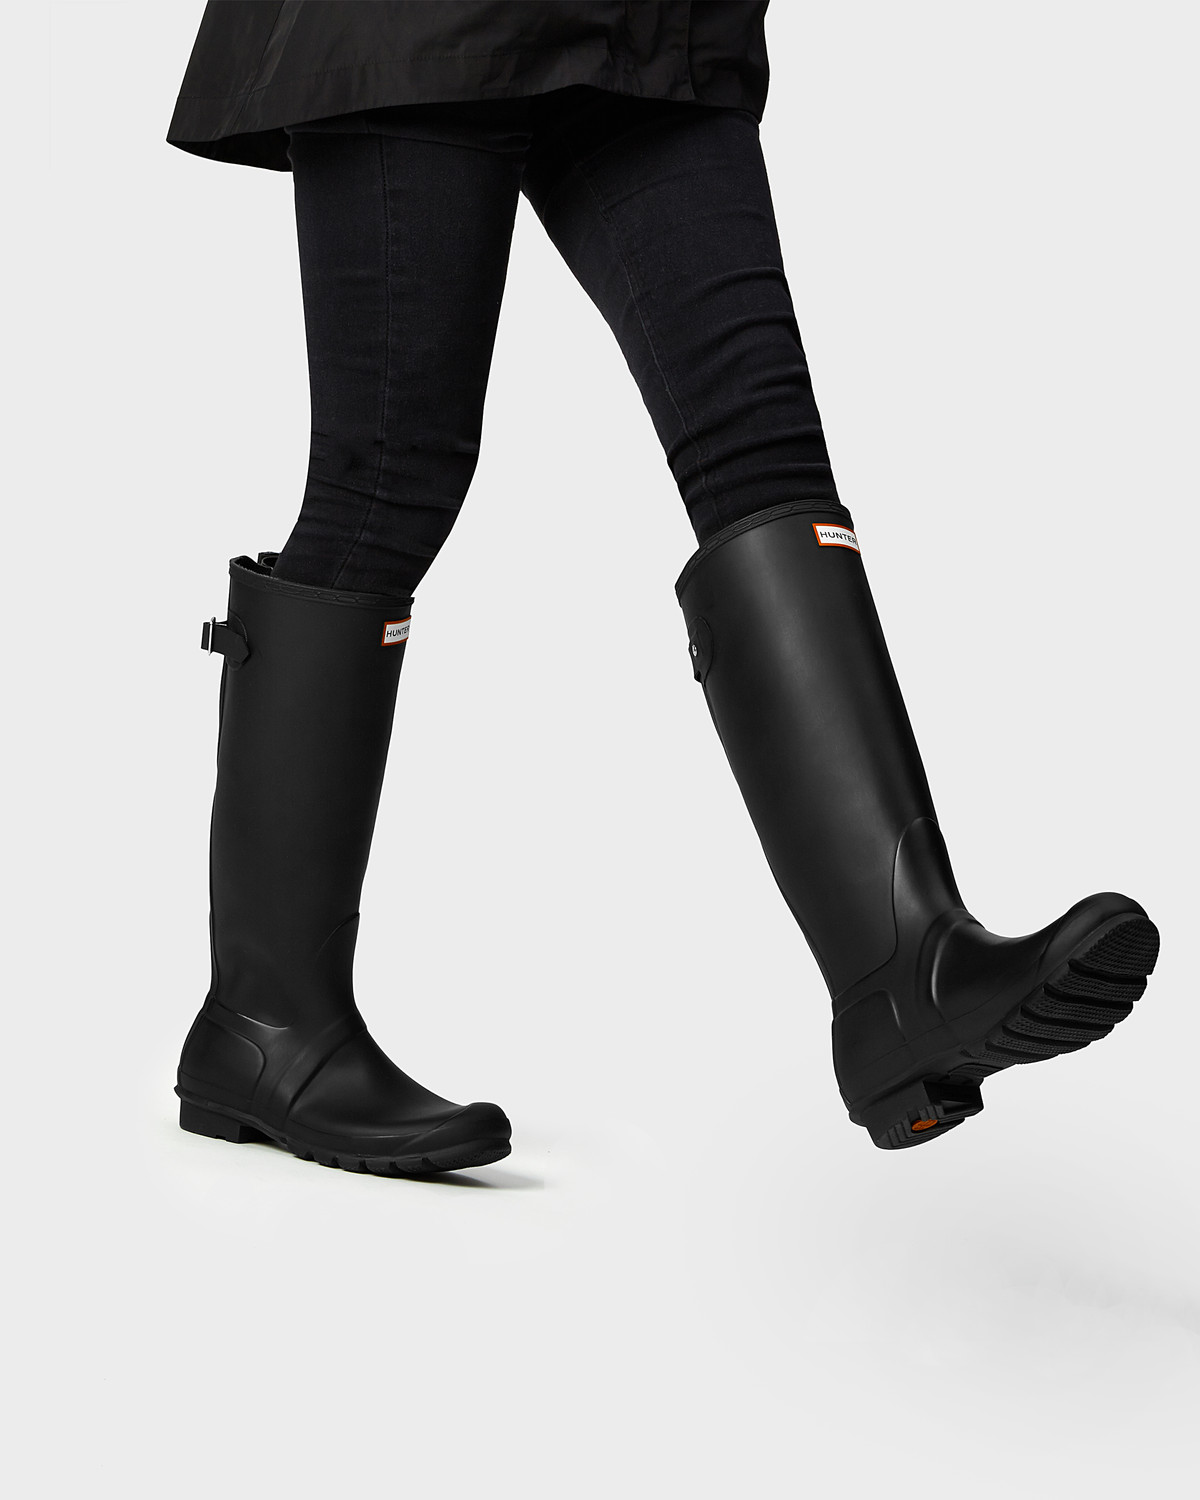 HUNTER: Women's Original Back Adjustable Rain Boots